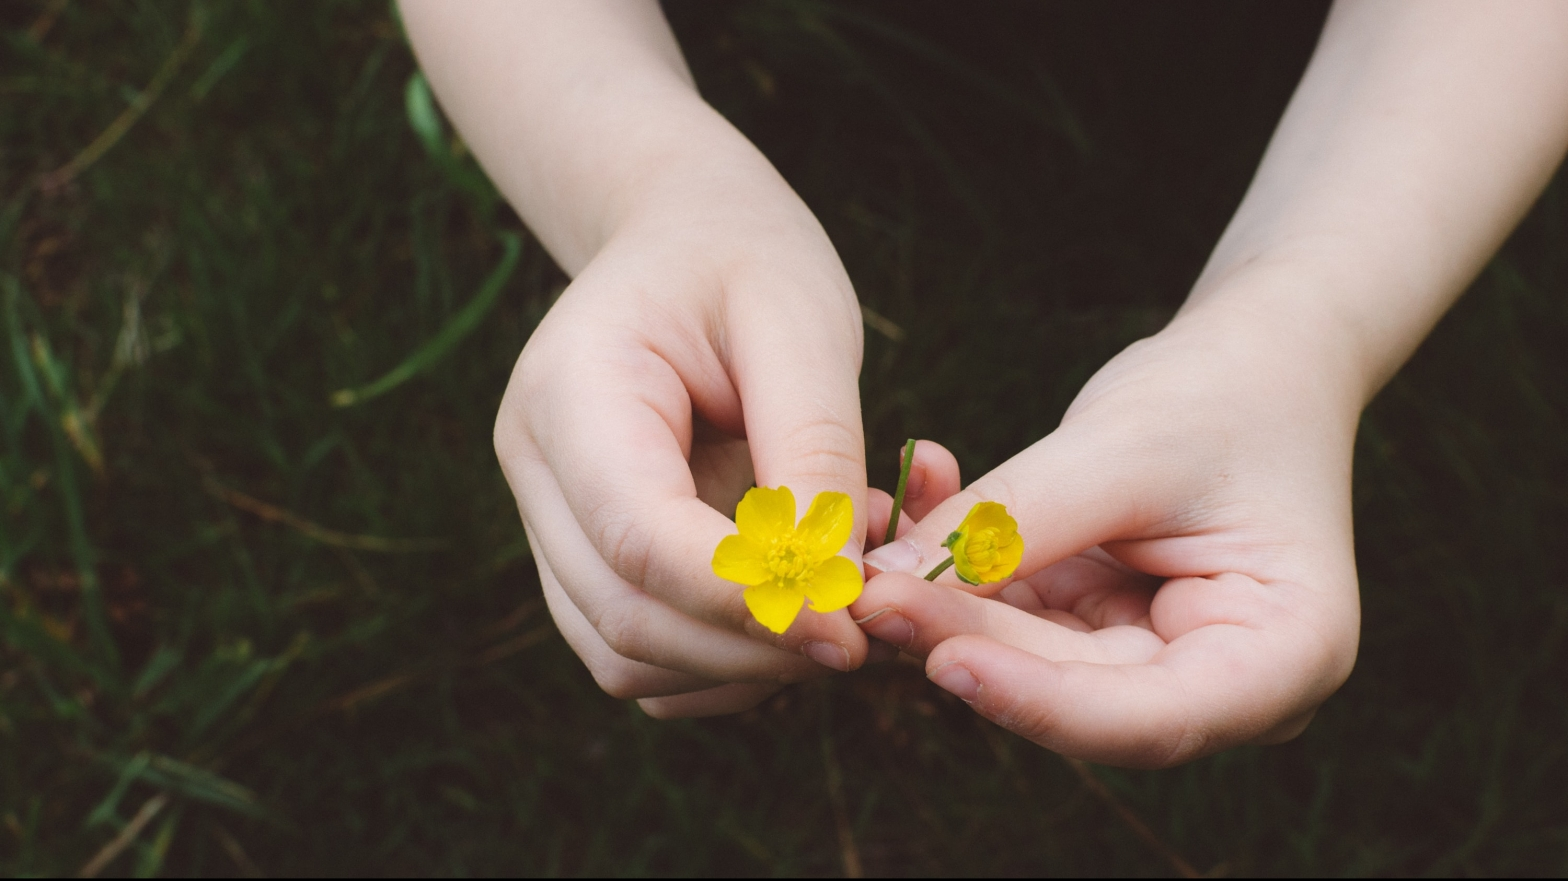 a child's hands holding a buttercup